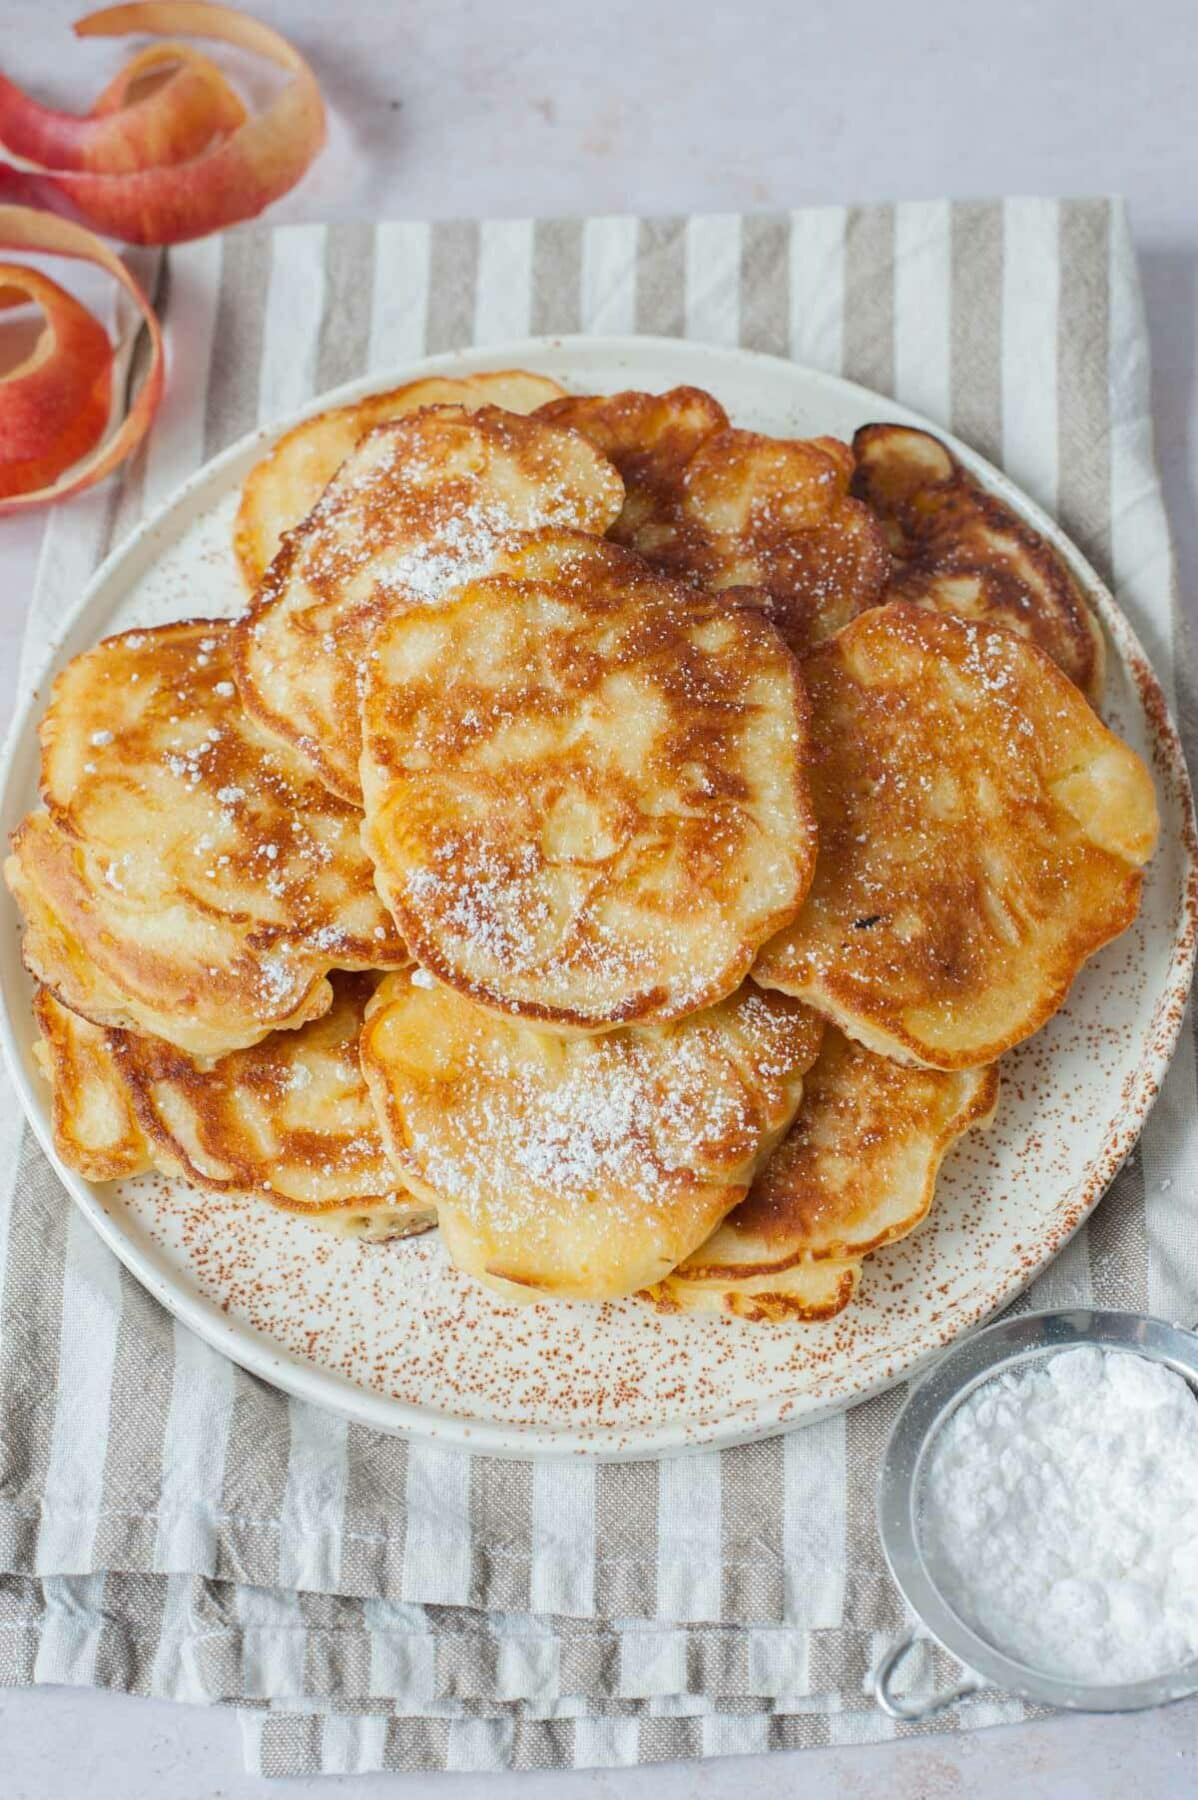 Polish apple pancakes dusted with powdered sugar on a white plate.